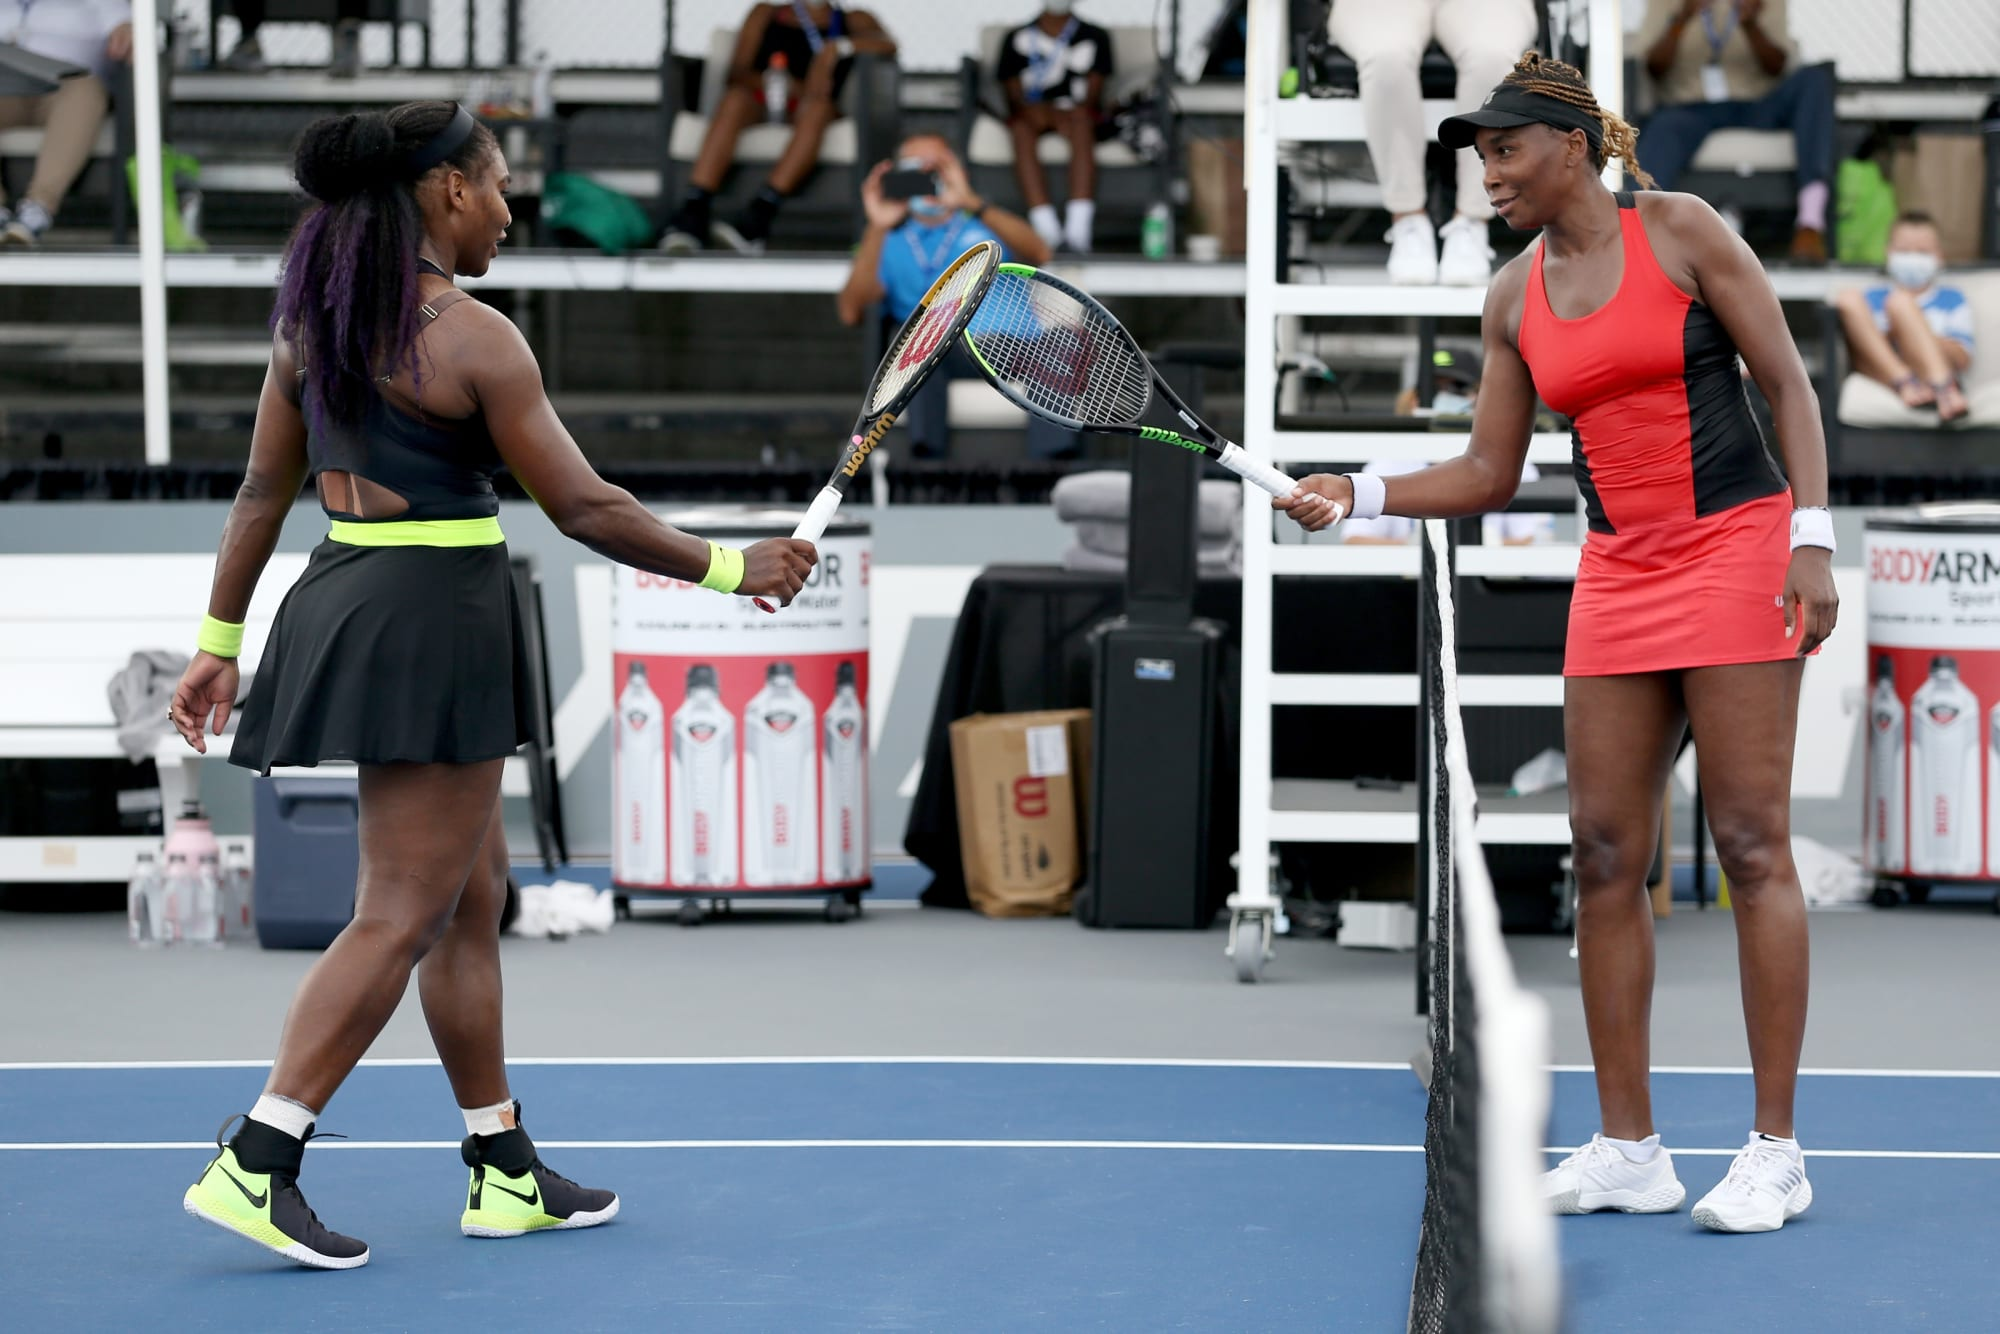 Serena thunders back to defeat sister Venus in best all-time matchup